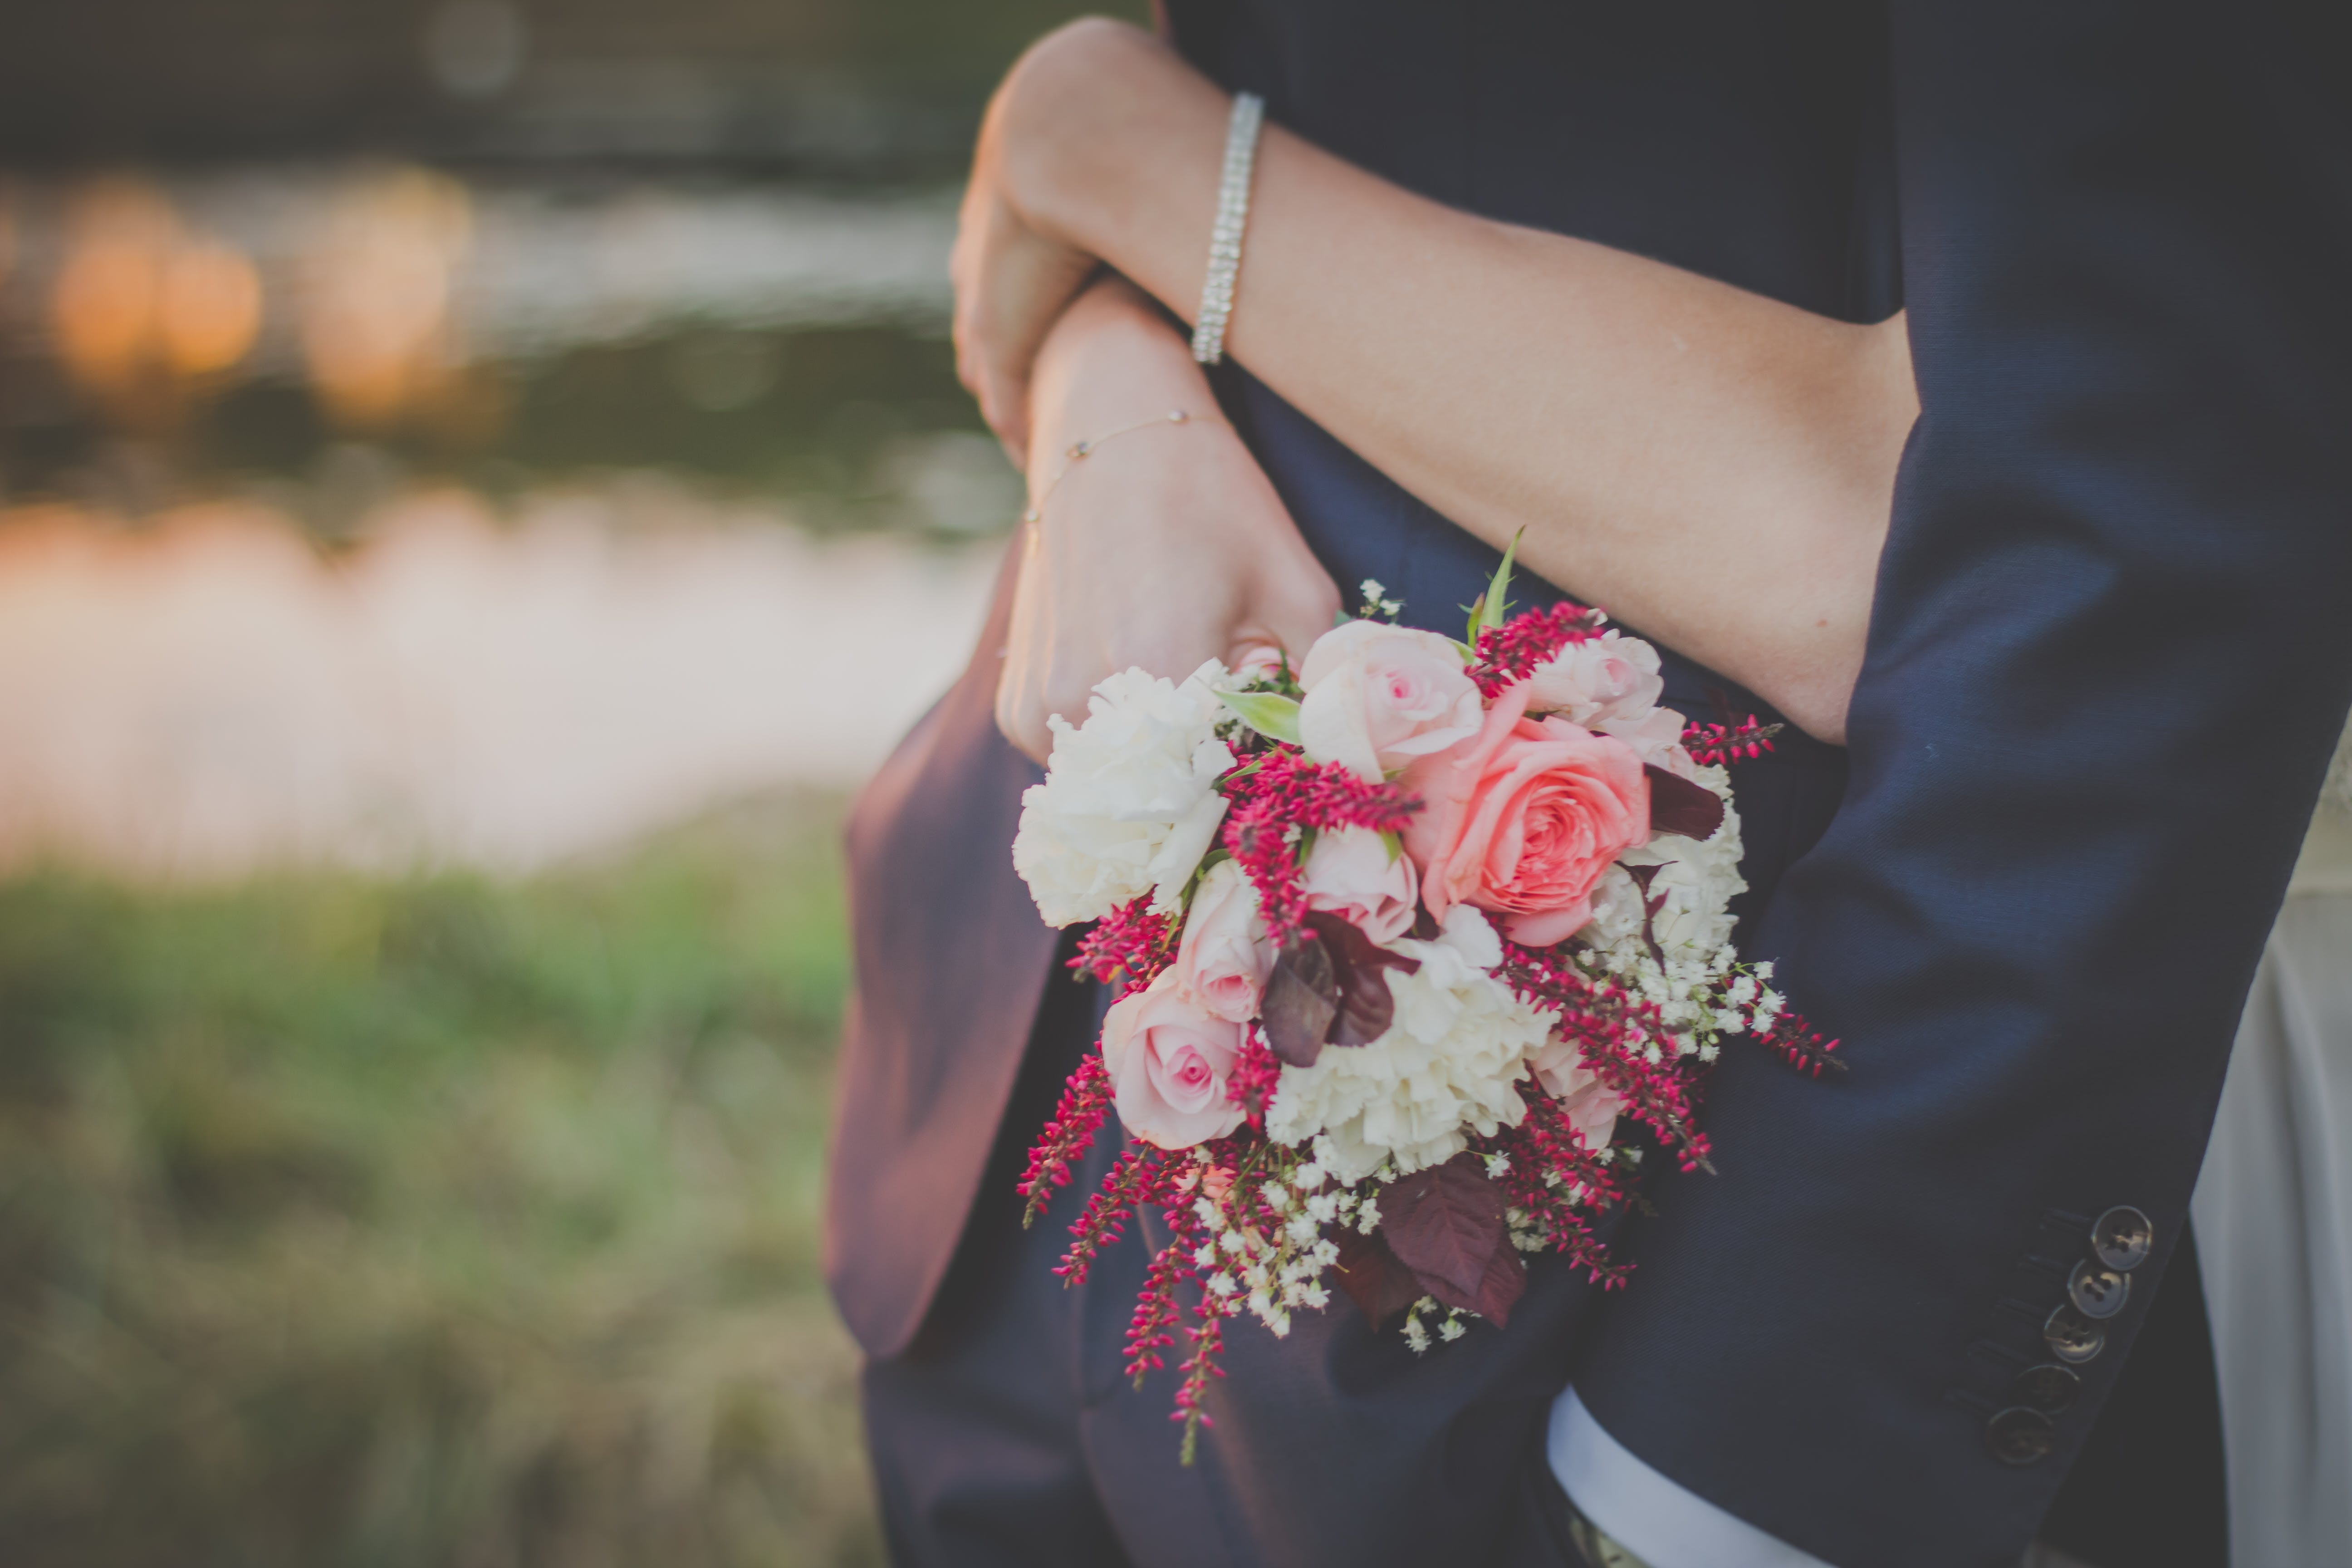 Person Holding a Bouquet of Flower